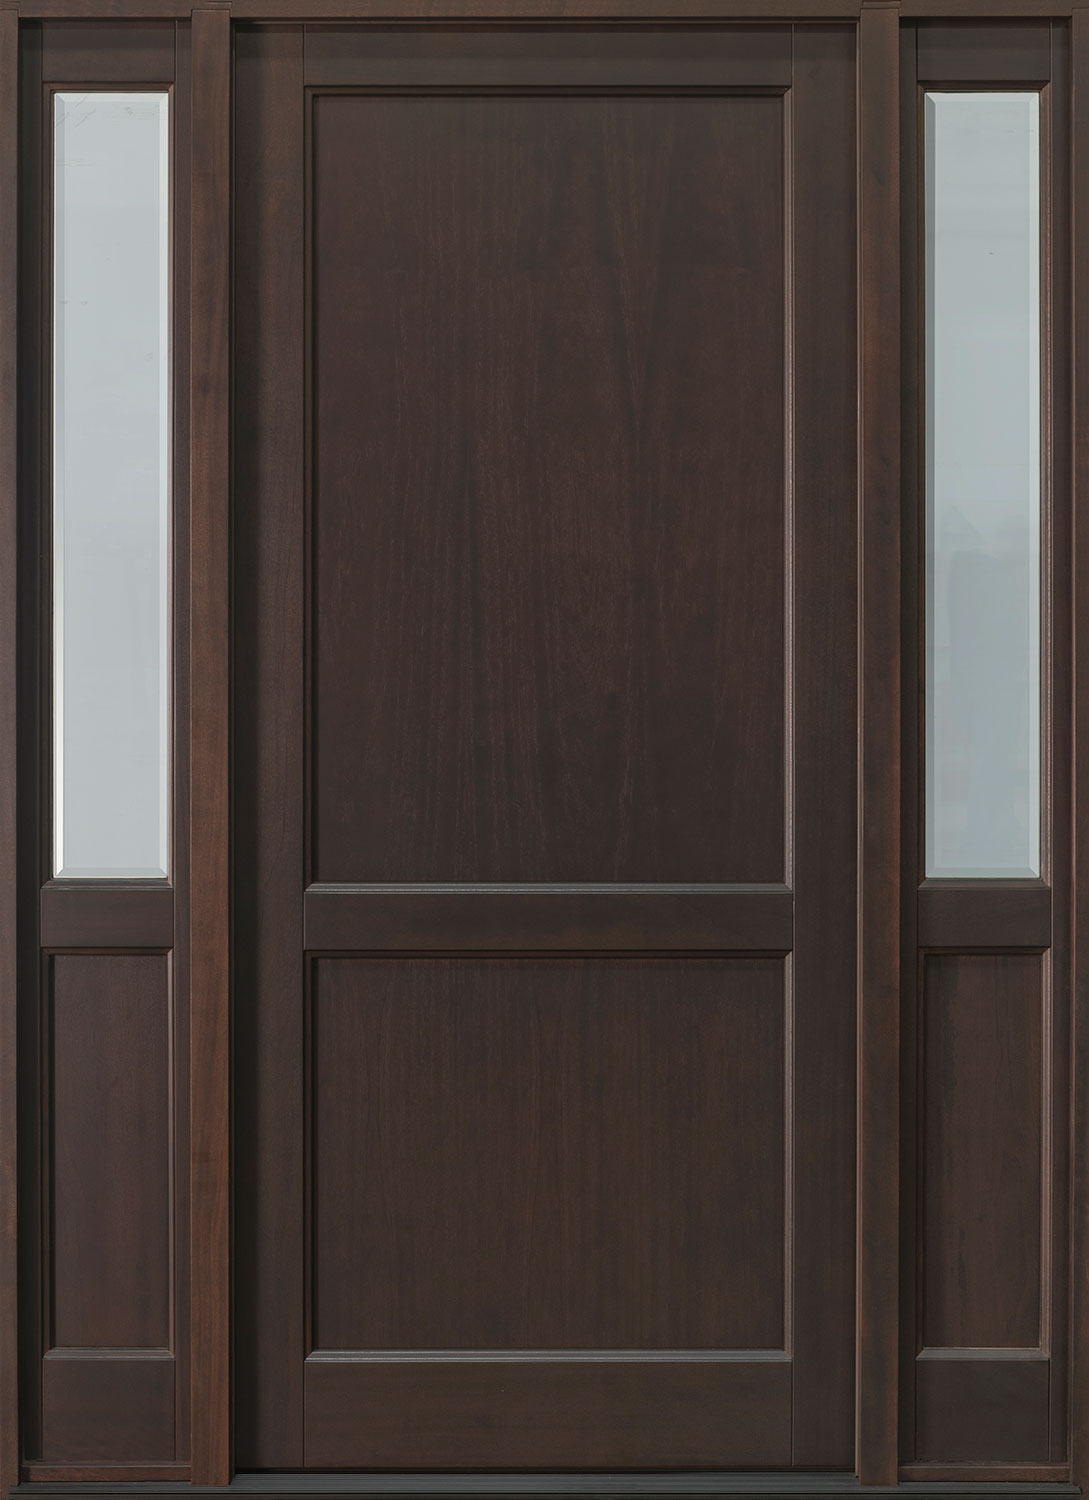 Classic Mahogany Wood Front Door  - GD-201PW 2SL